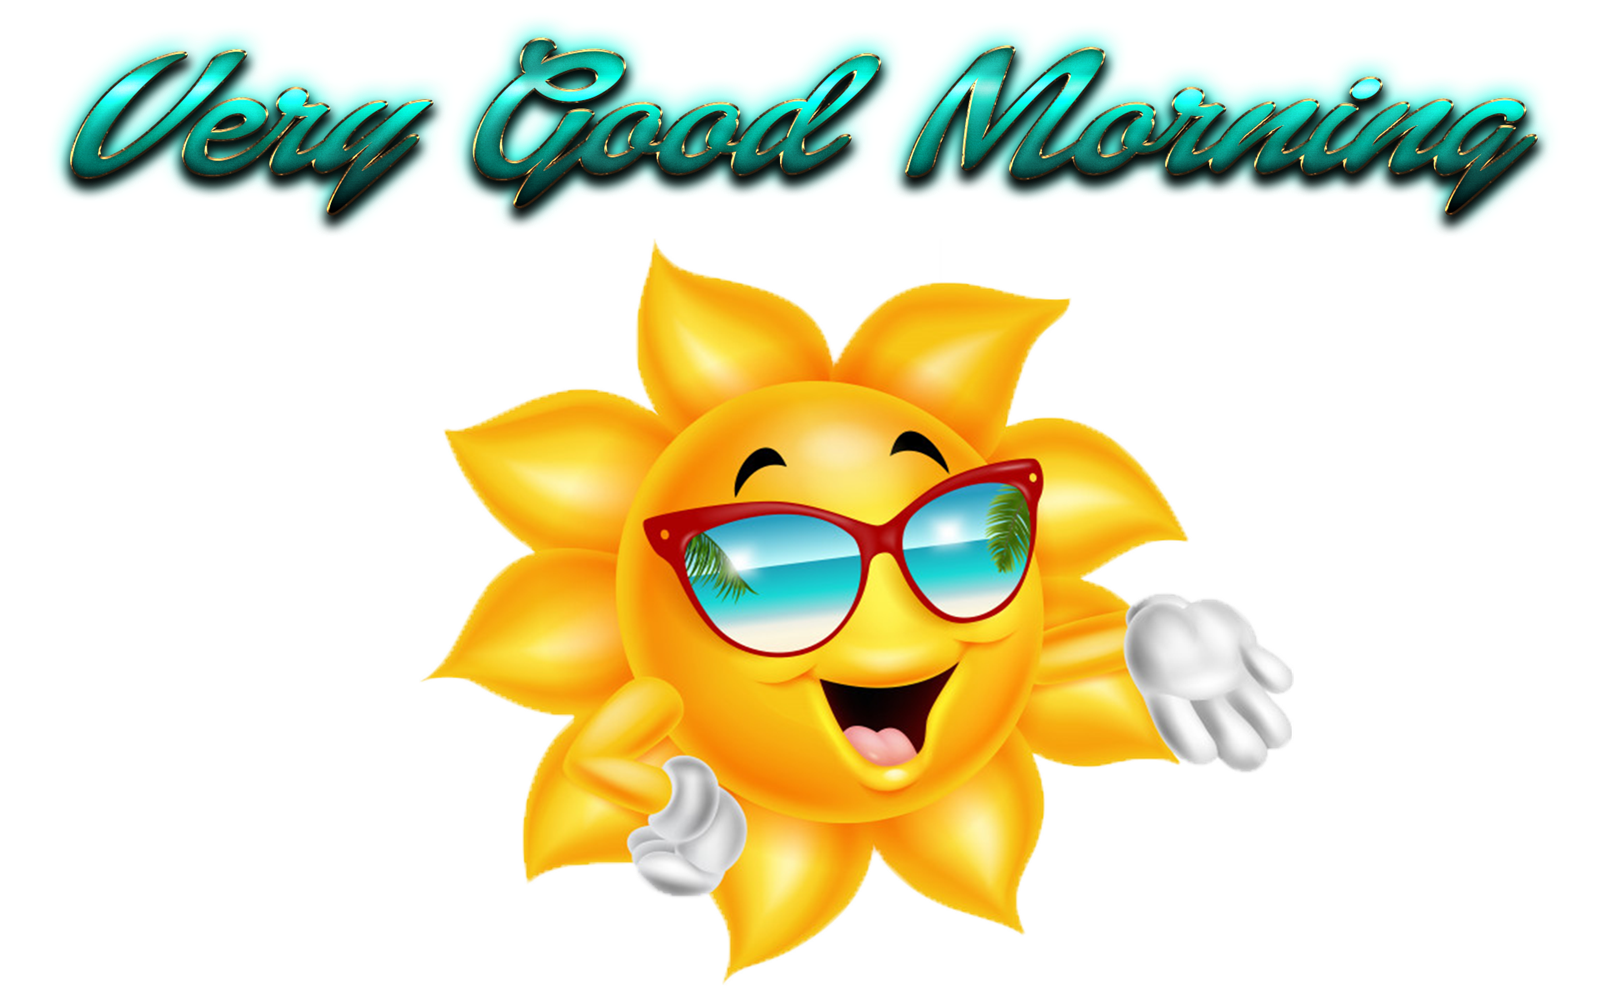 Good Morning PNG Transparent Images Free Download.